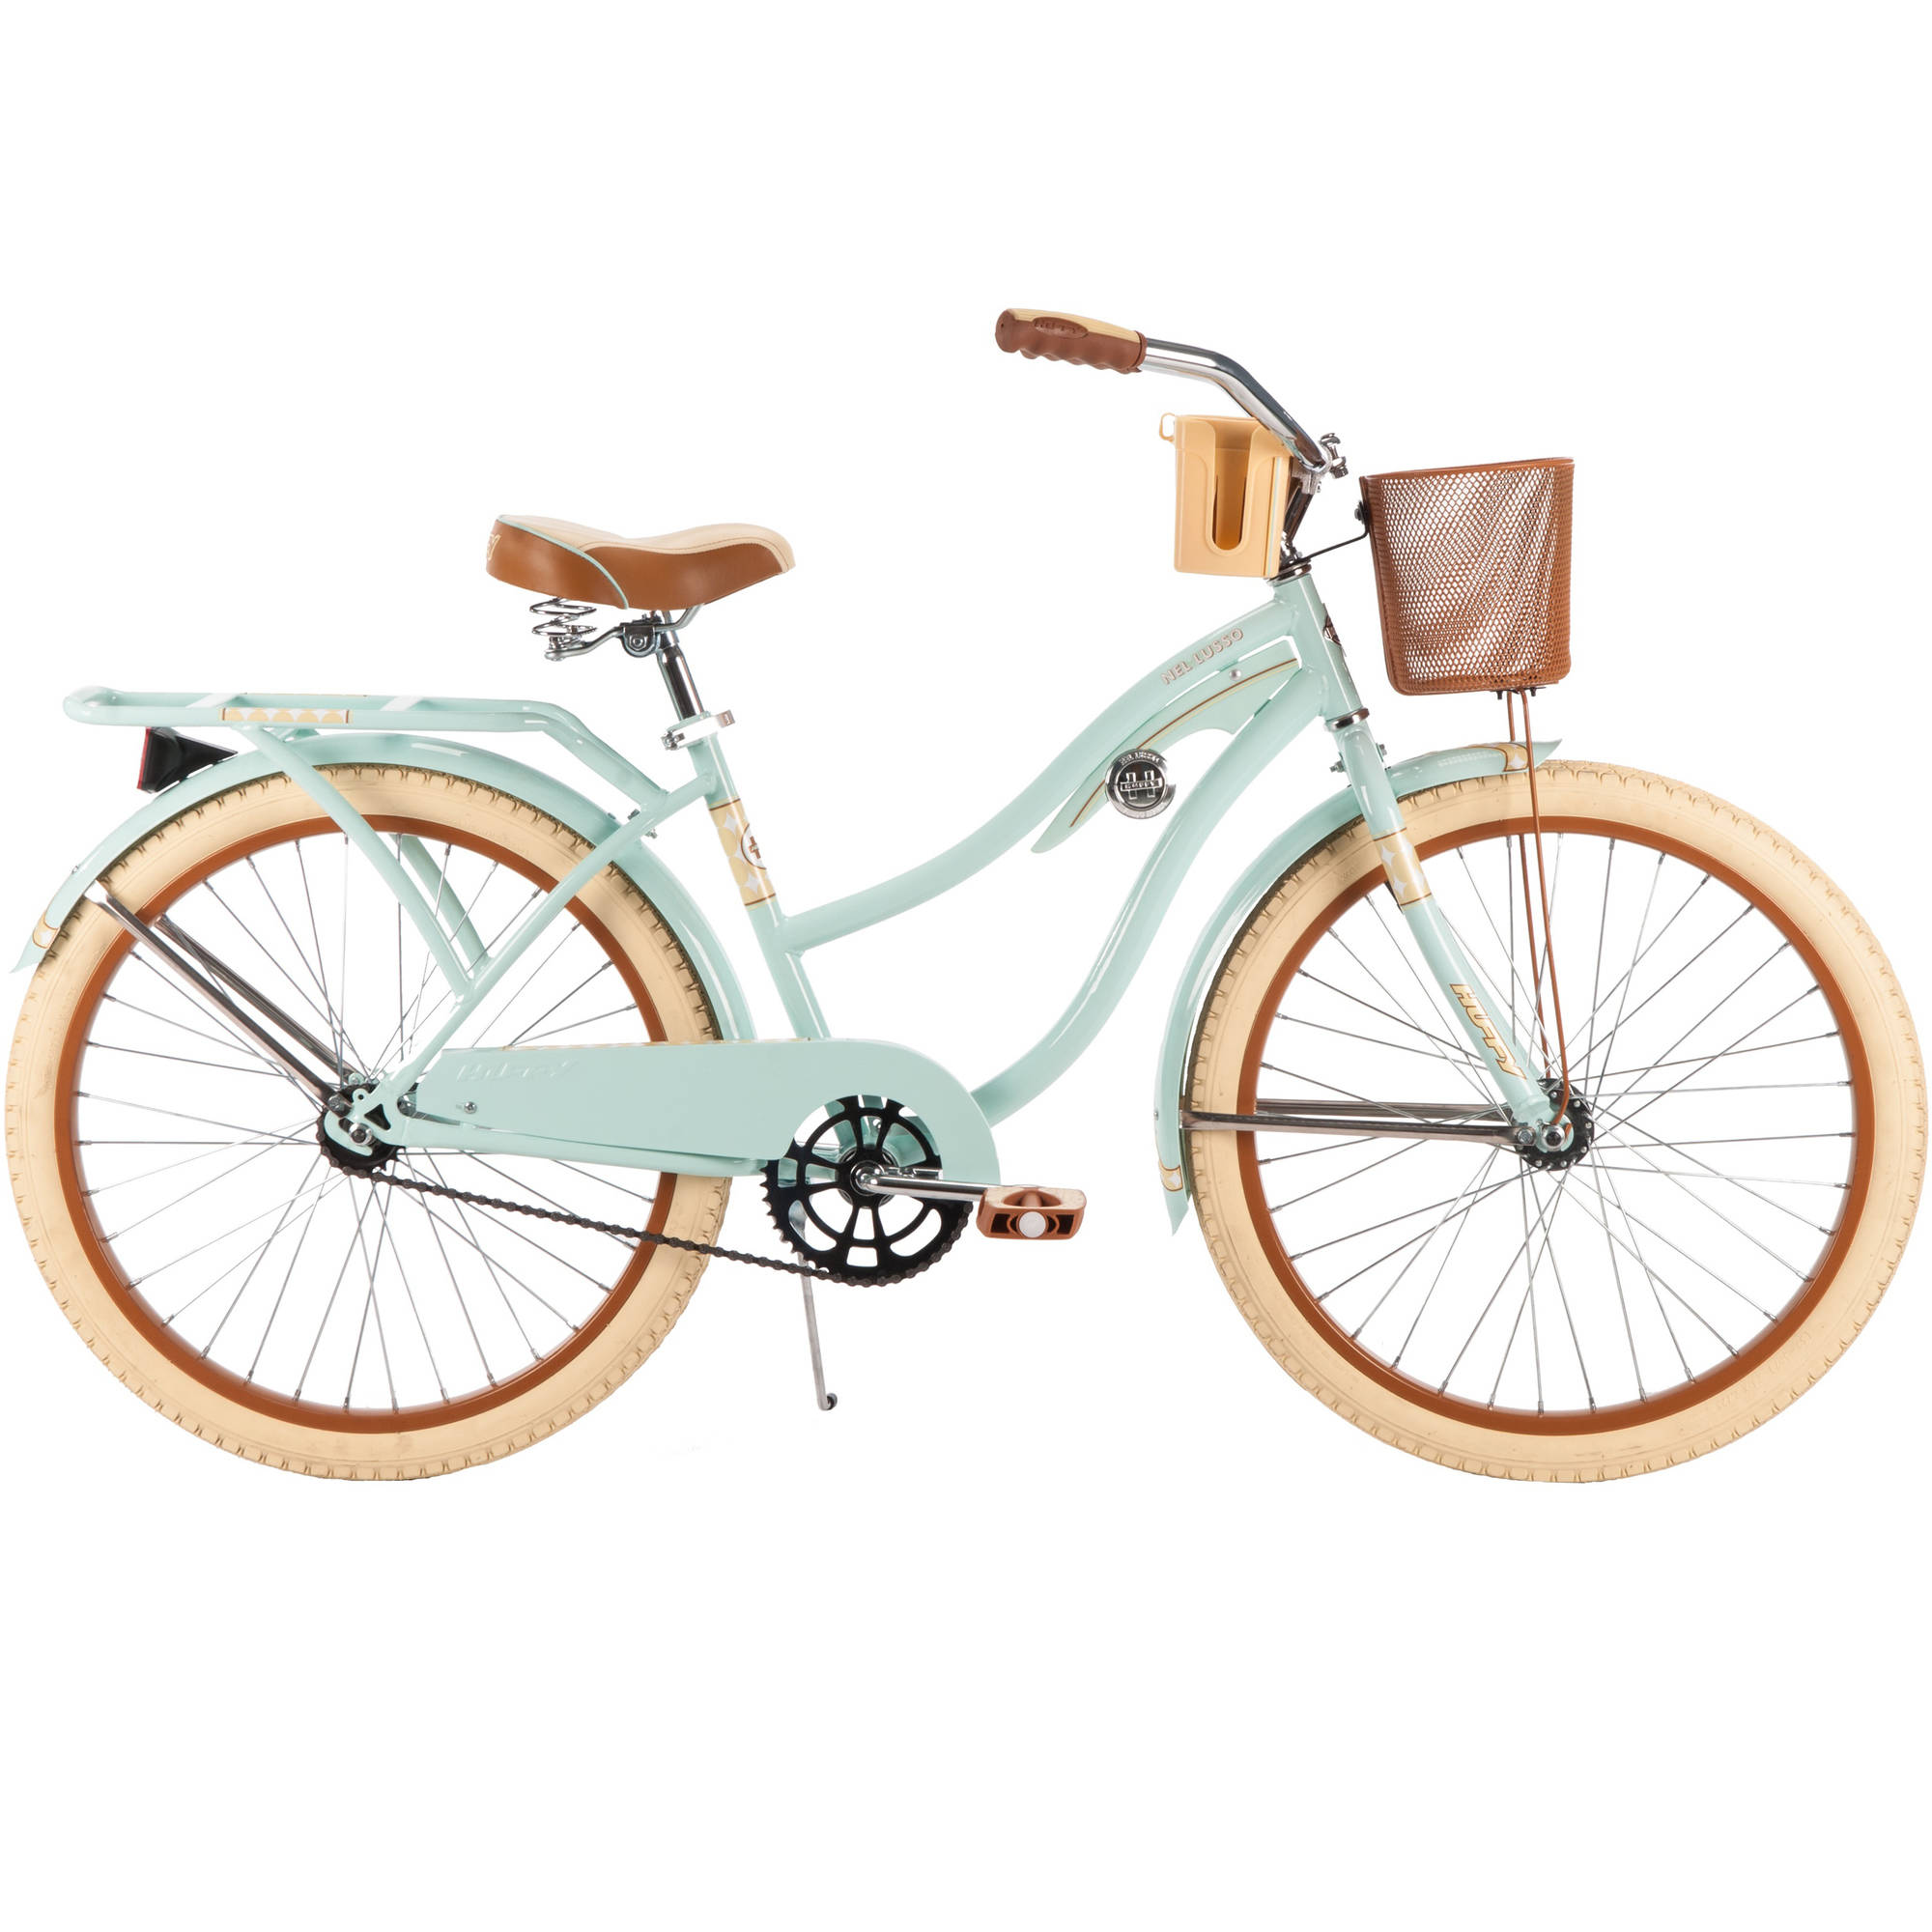 "Huffy 24"" Nel Lusso Womens' Cruiser Bike with Basket, Mint"